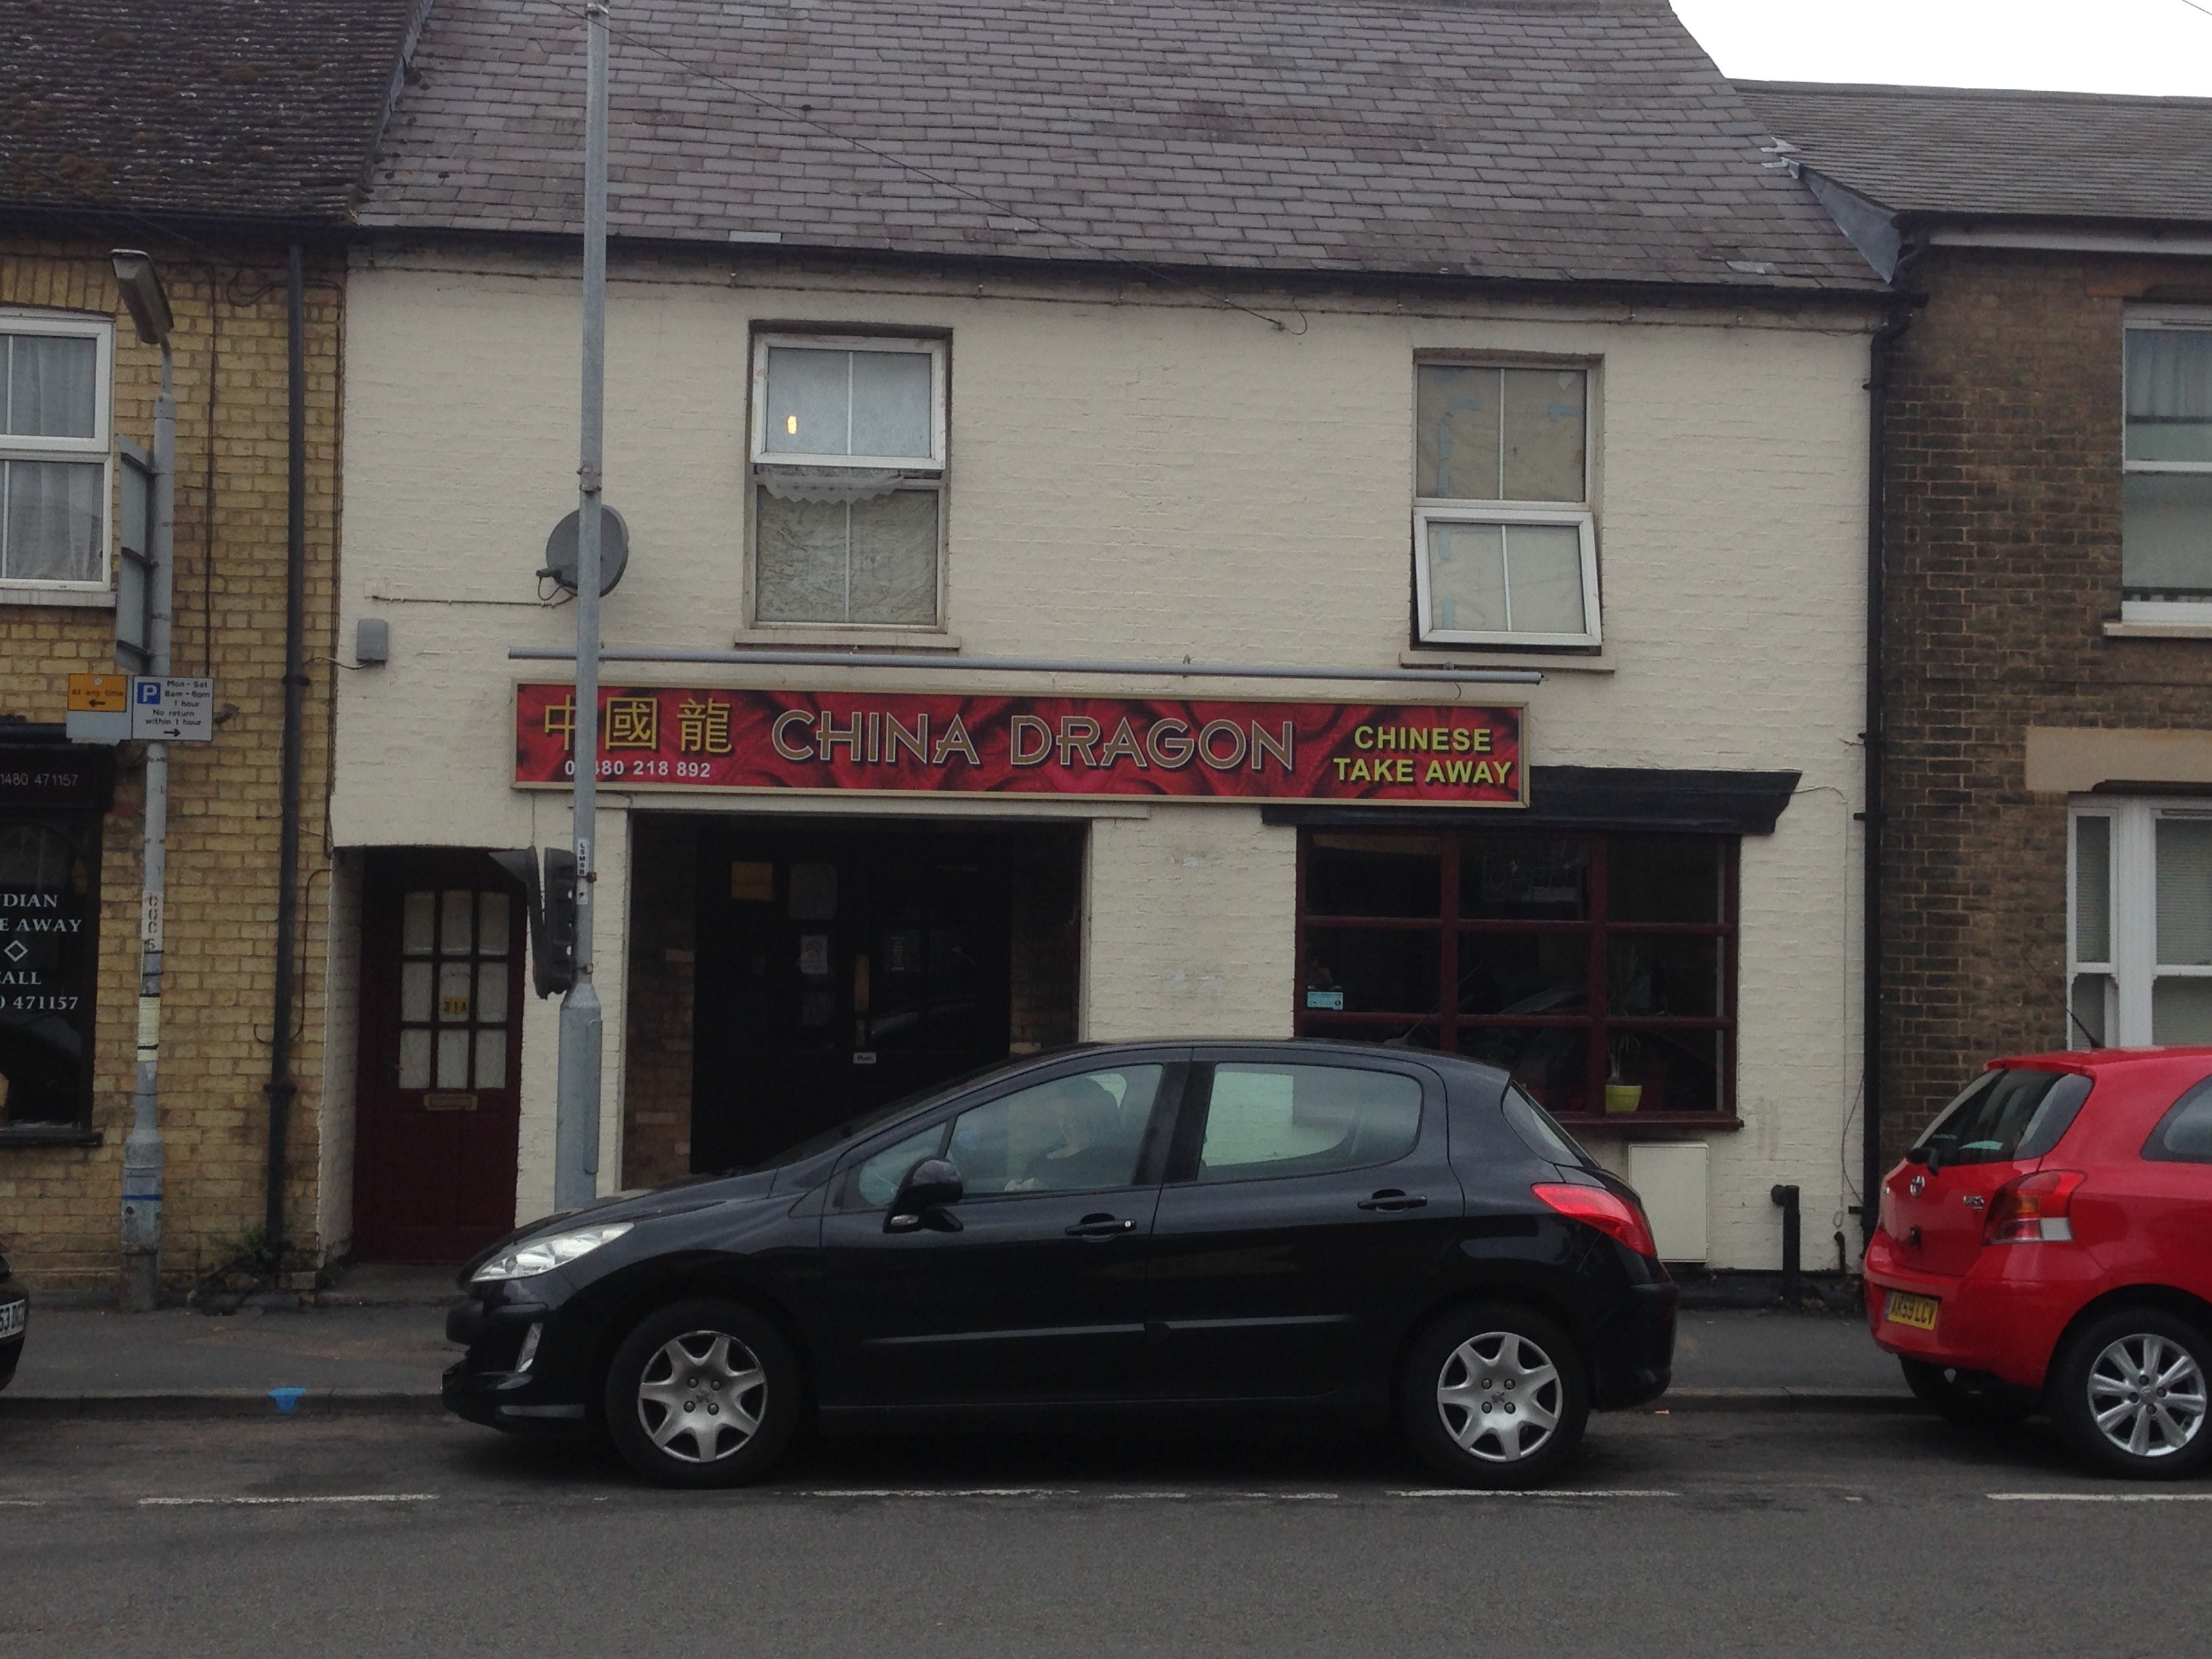 China Dragon Restaurant And Takeaway In Huntingdon Street